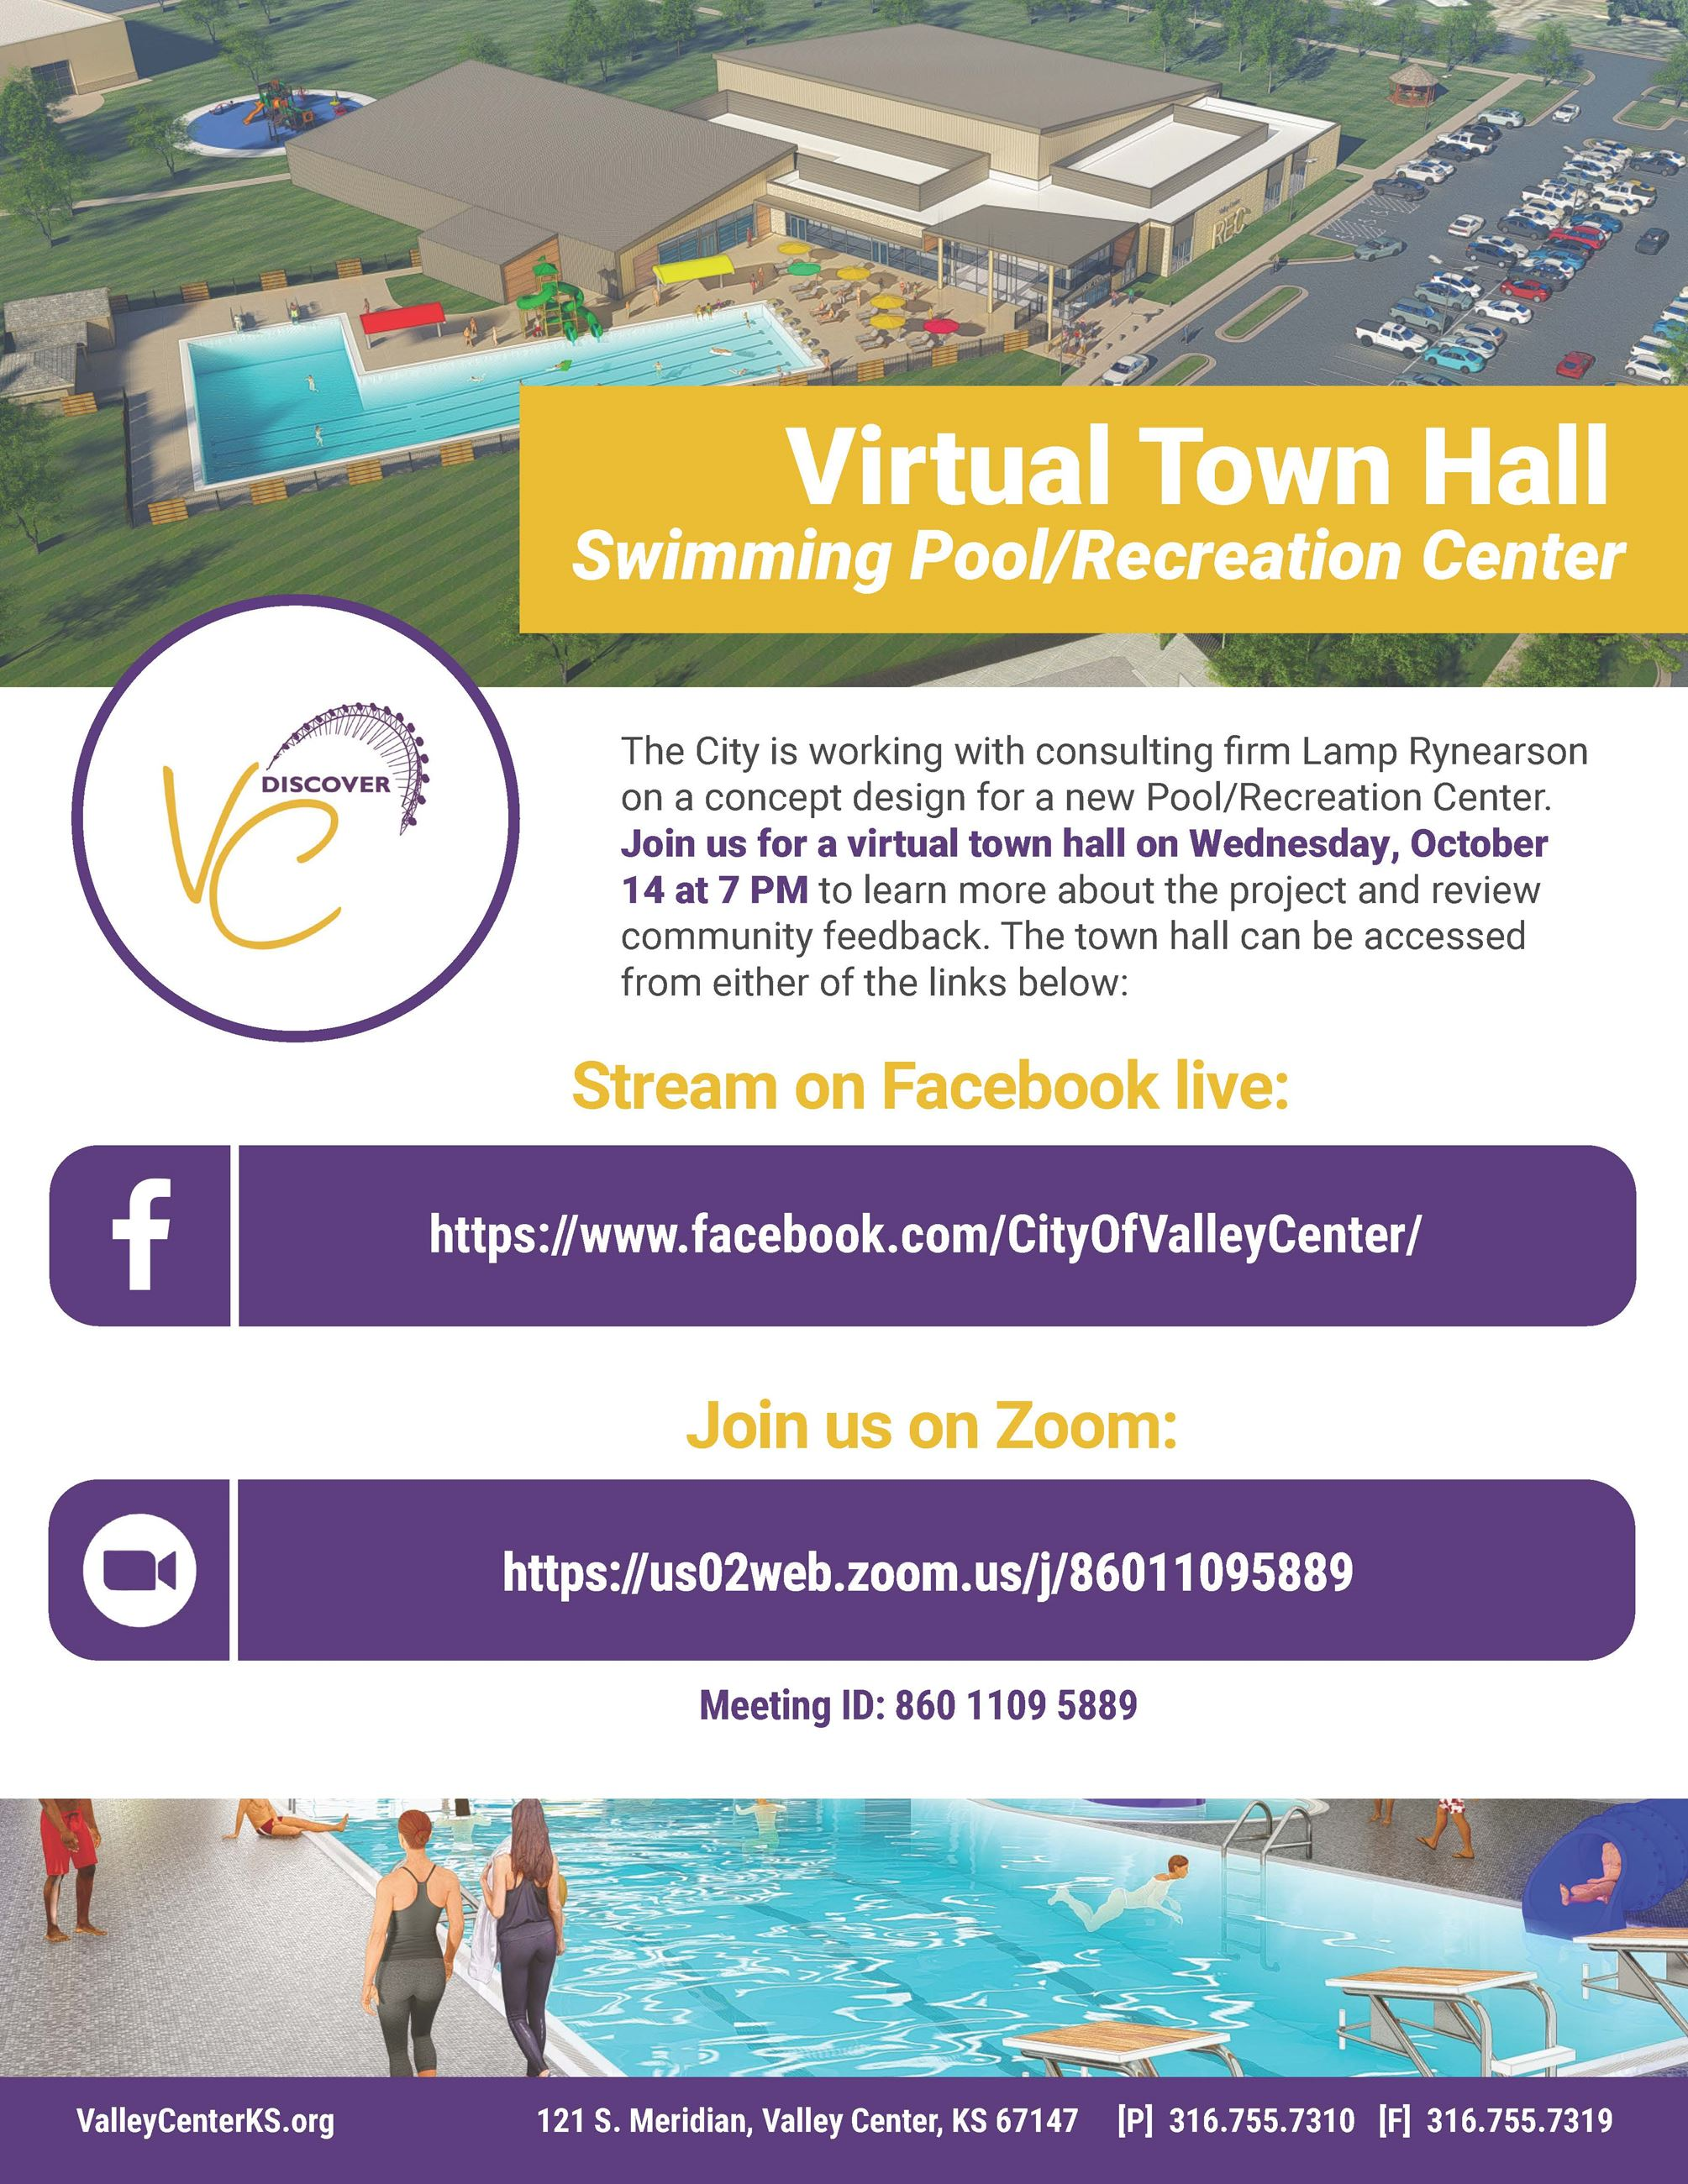 10-14-20 - Virtual-Town-Hall-Flyer